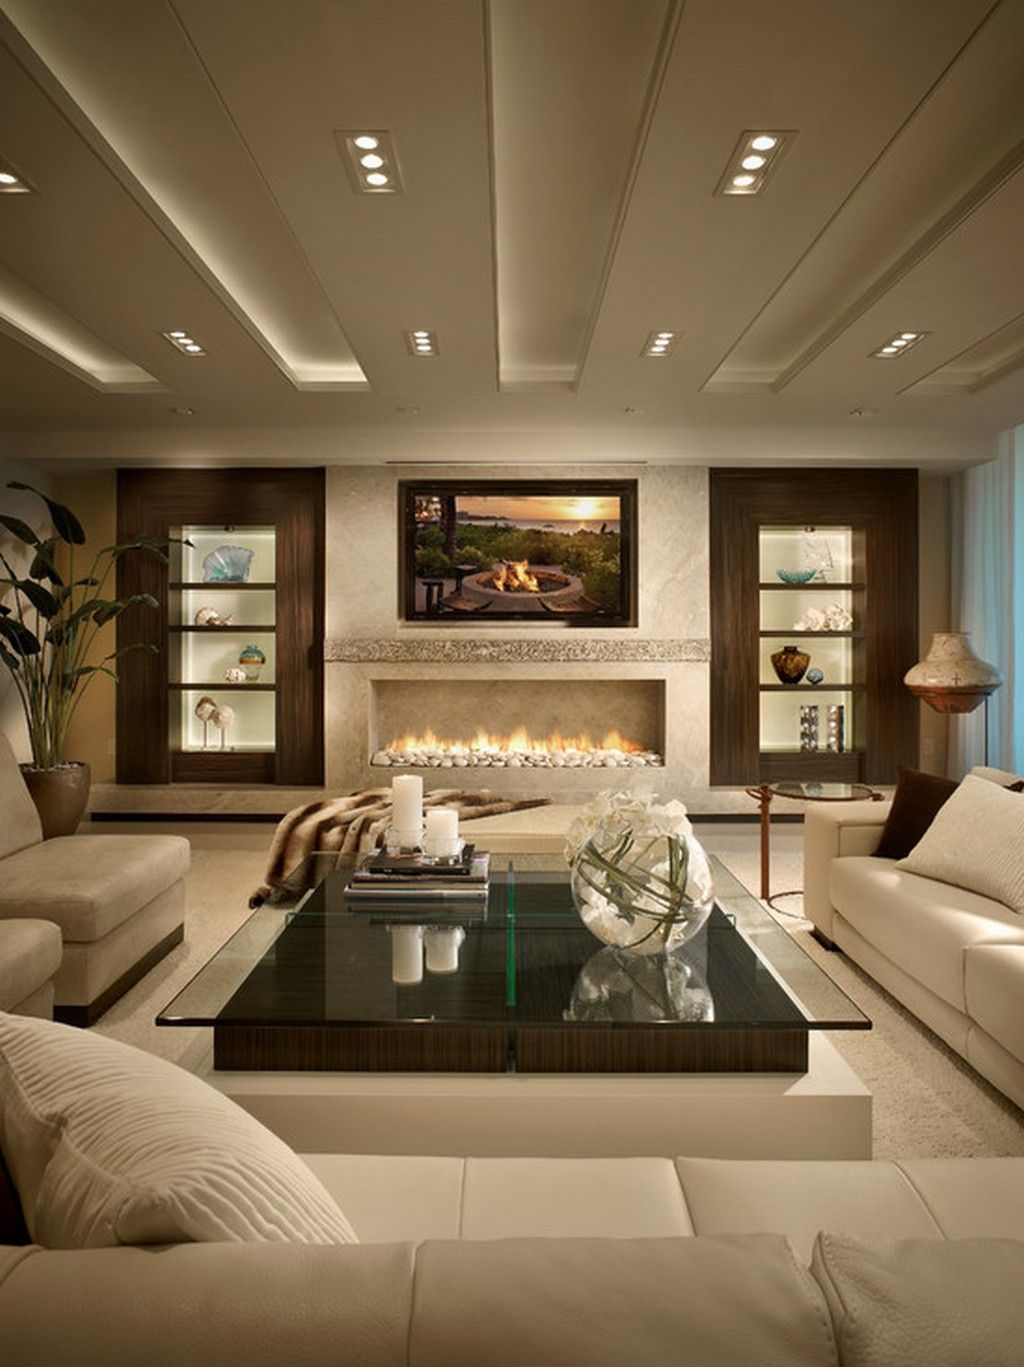 Living Room With Fireplace Design And Ideas That Will Warm You All Winter Contemporary Living Room Design Elegant Living Room Luxury Living Room #small #living #room #decorating #ideas #with #fireplace